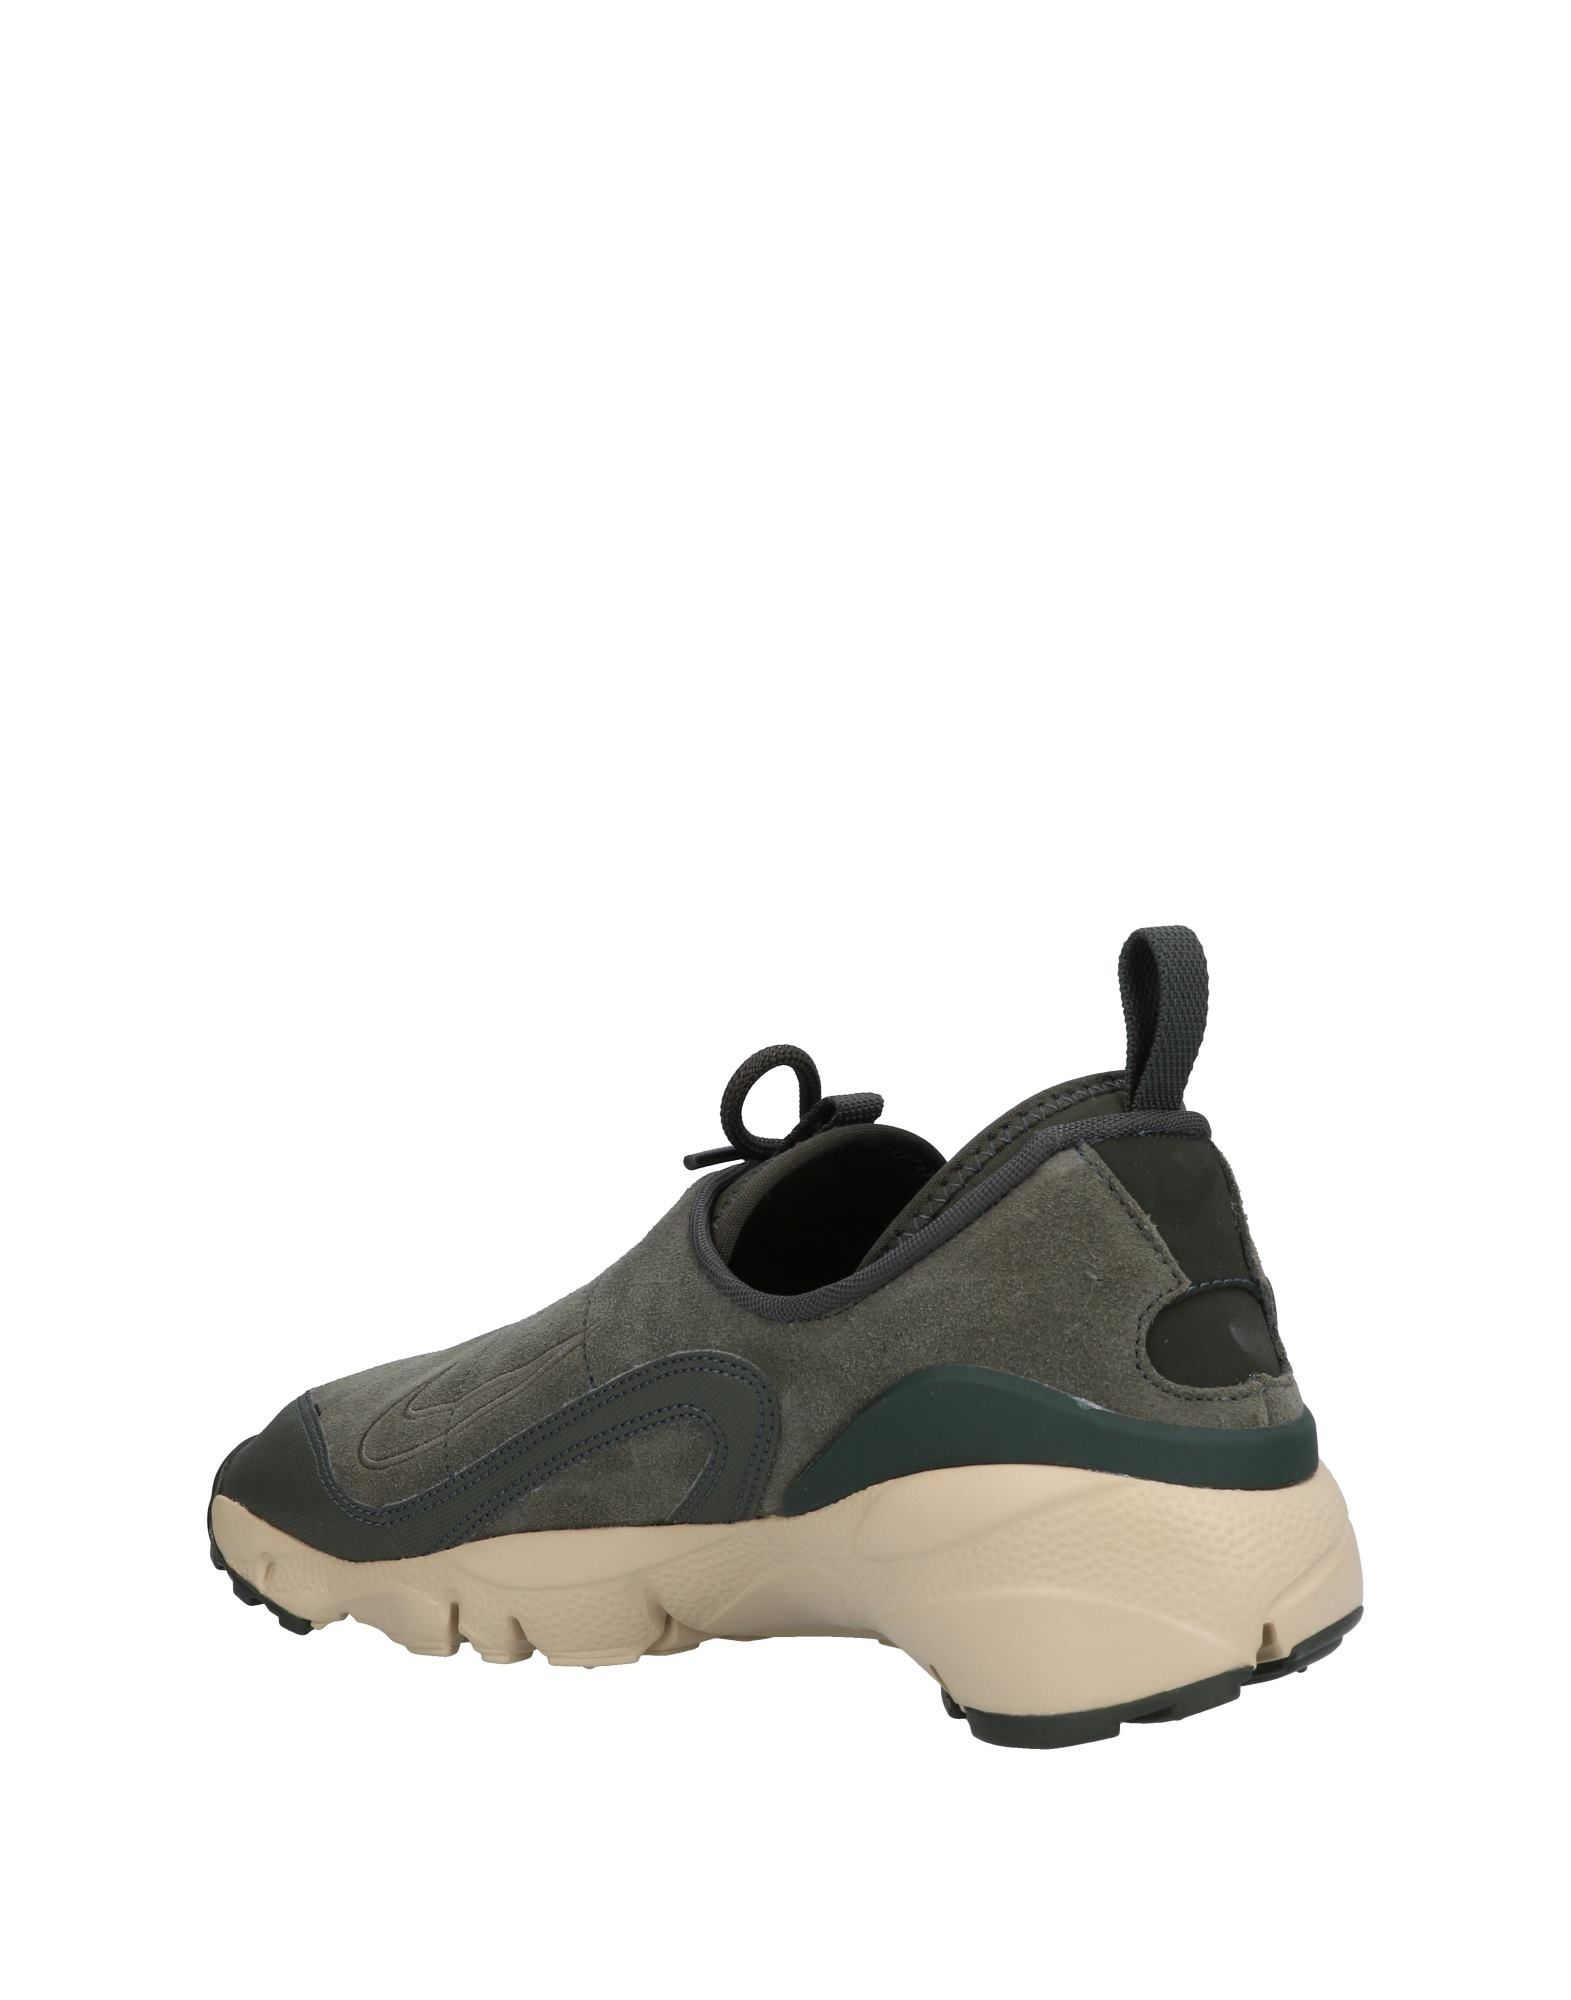 Nike Sneakers - Men Nike Sneakers Sneakers Sneakers online on  Canada - 11497266TW 4e9ad4